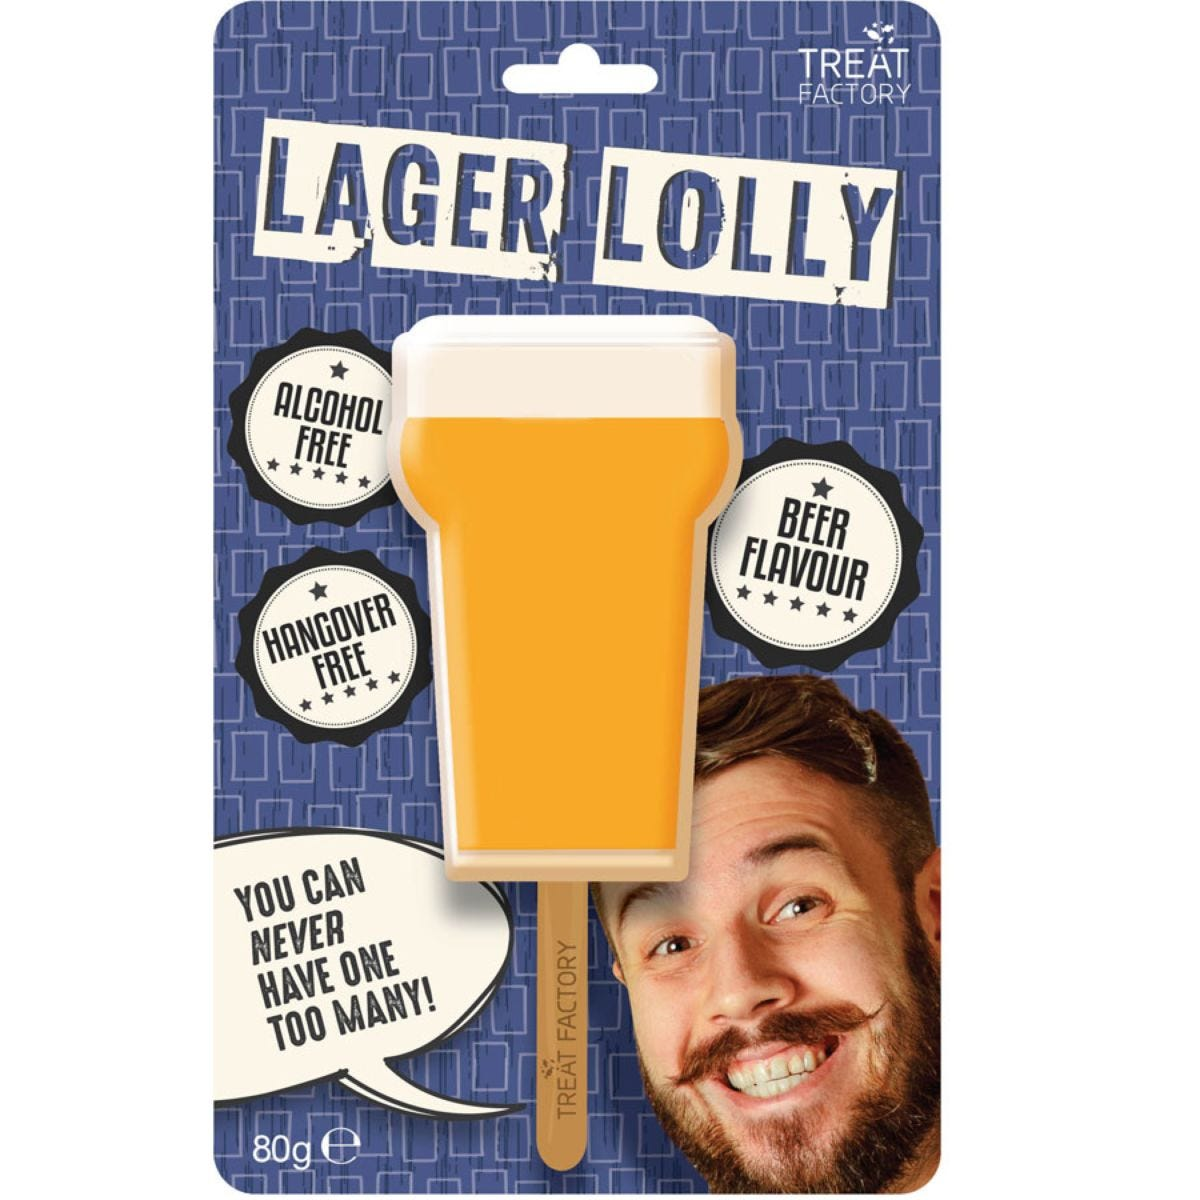 Alcohol Free Lager Lolly